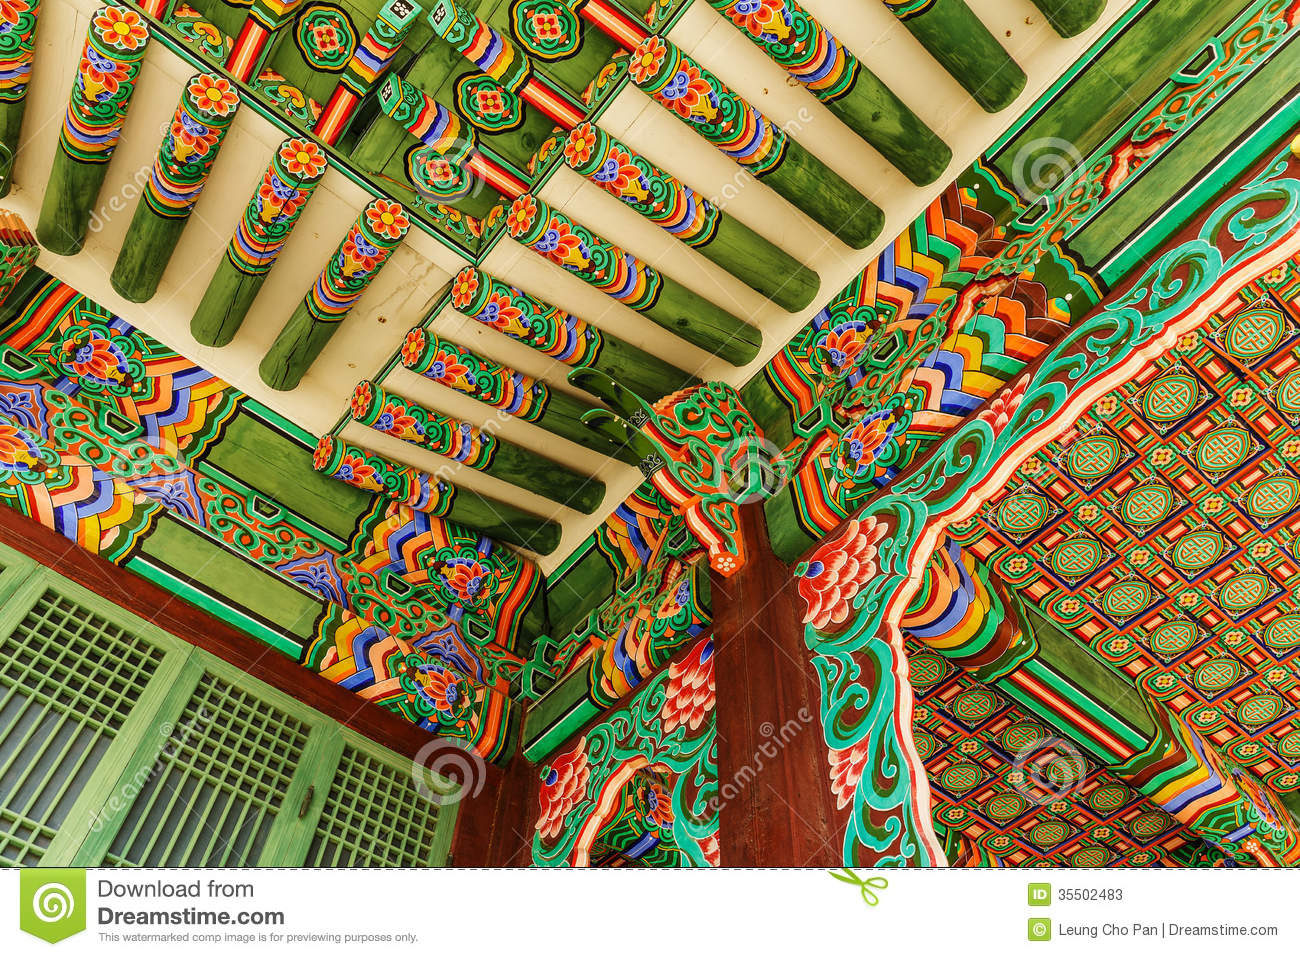 https://thumbs.dreamstime.com/z/korean-painting-traditional-architecture-ceiling-35502483.jpg Traditional